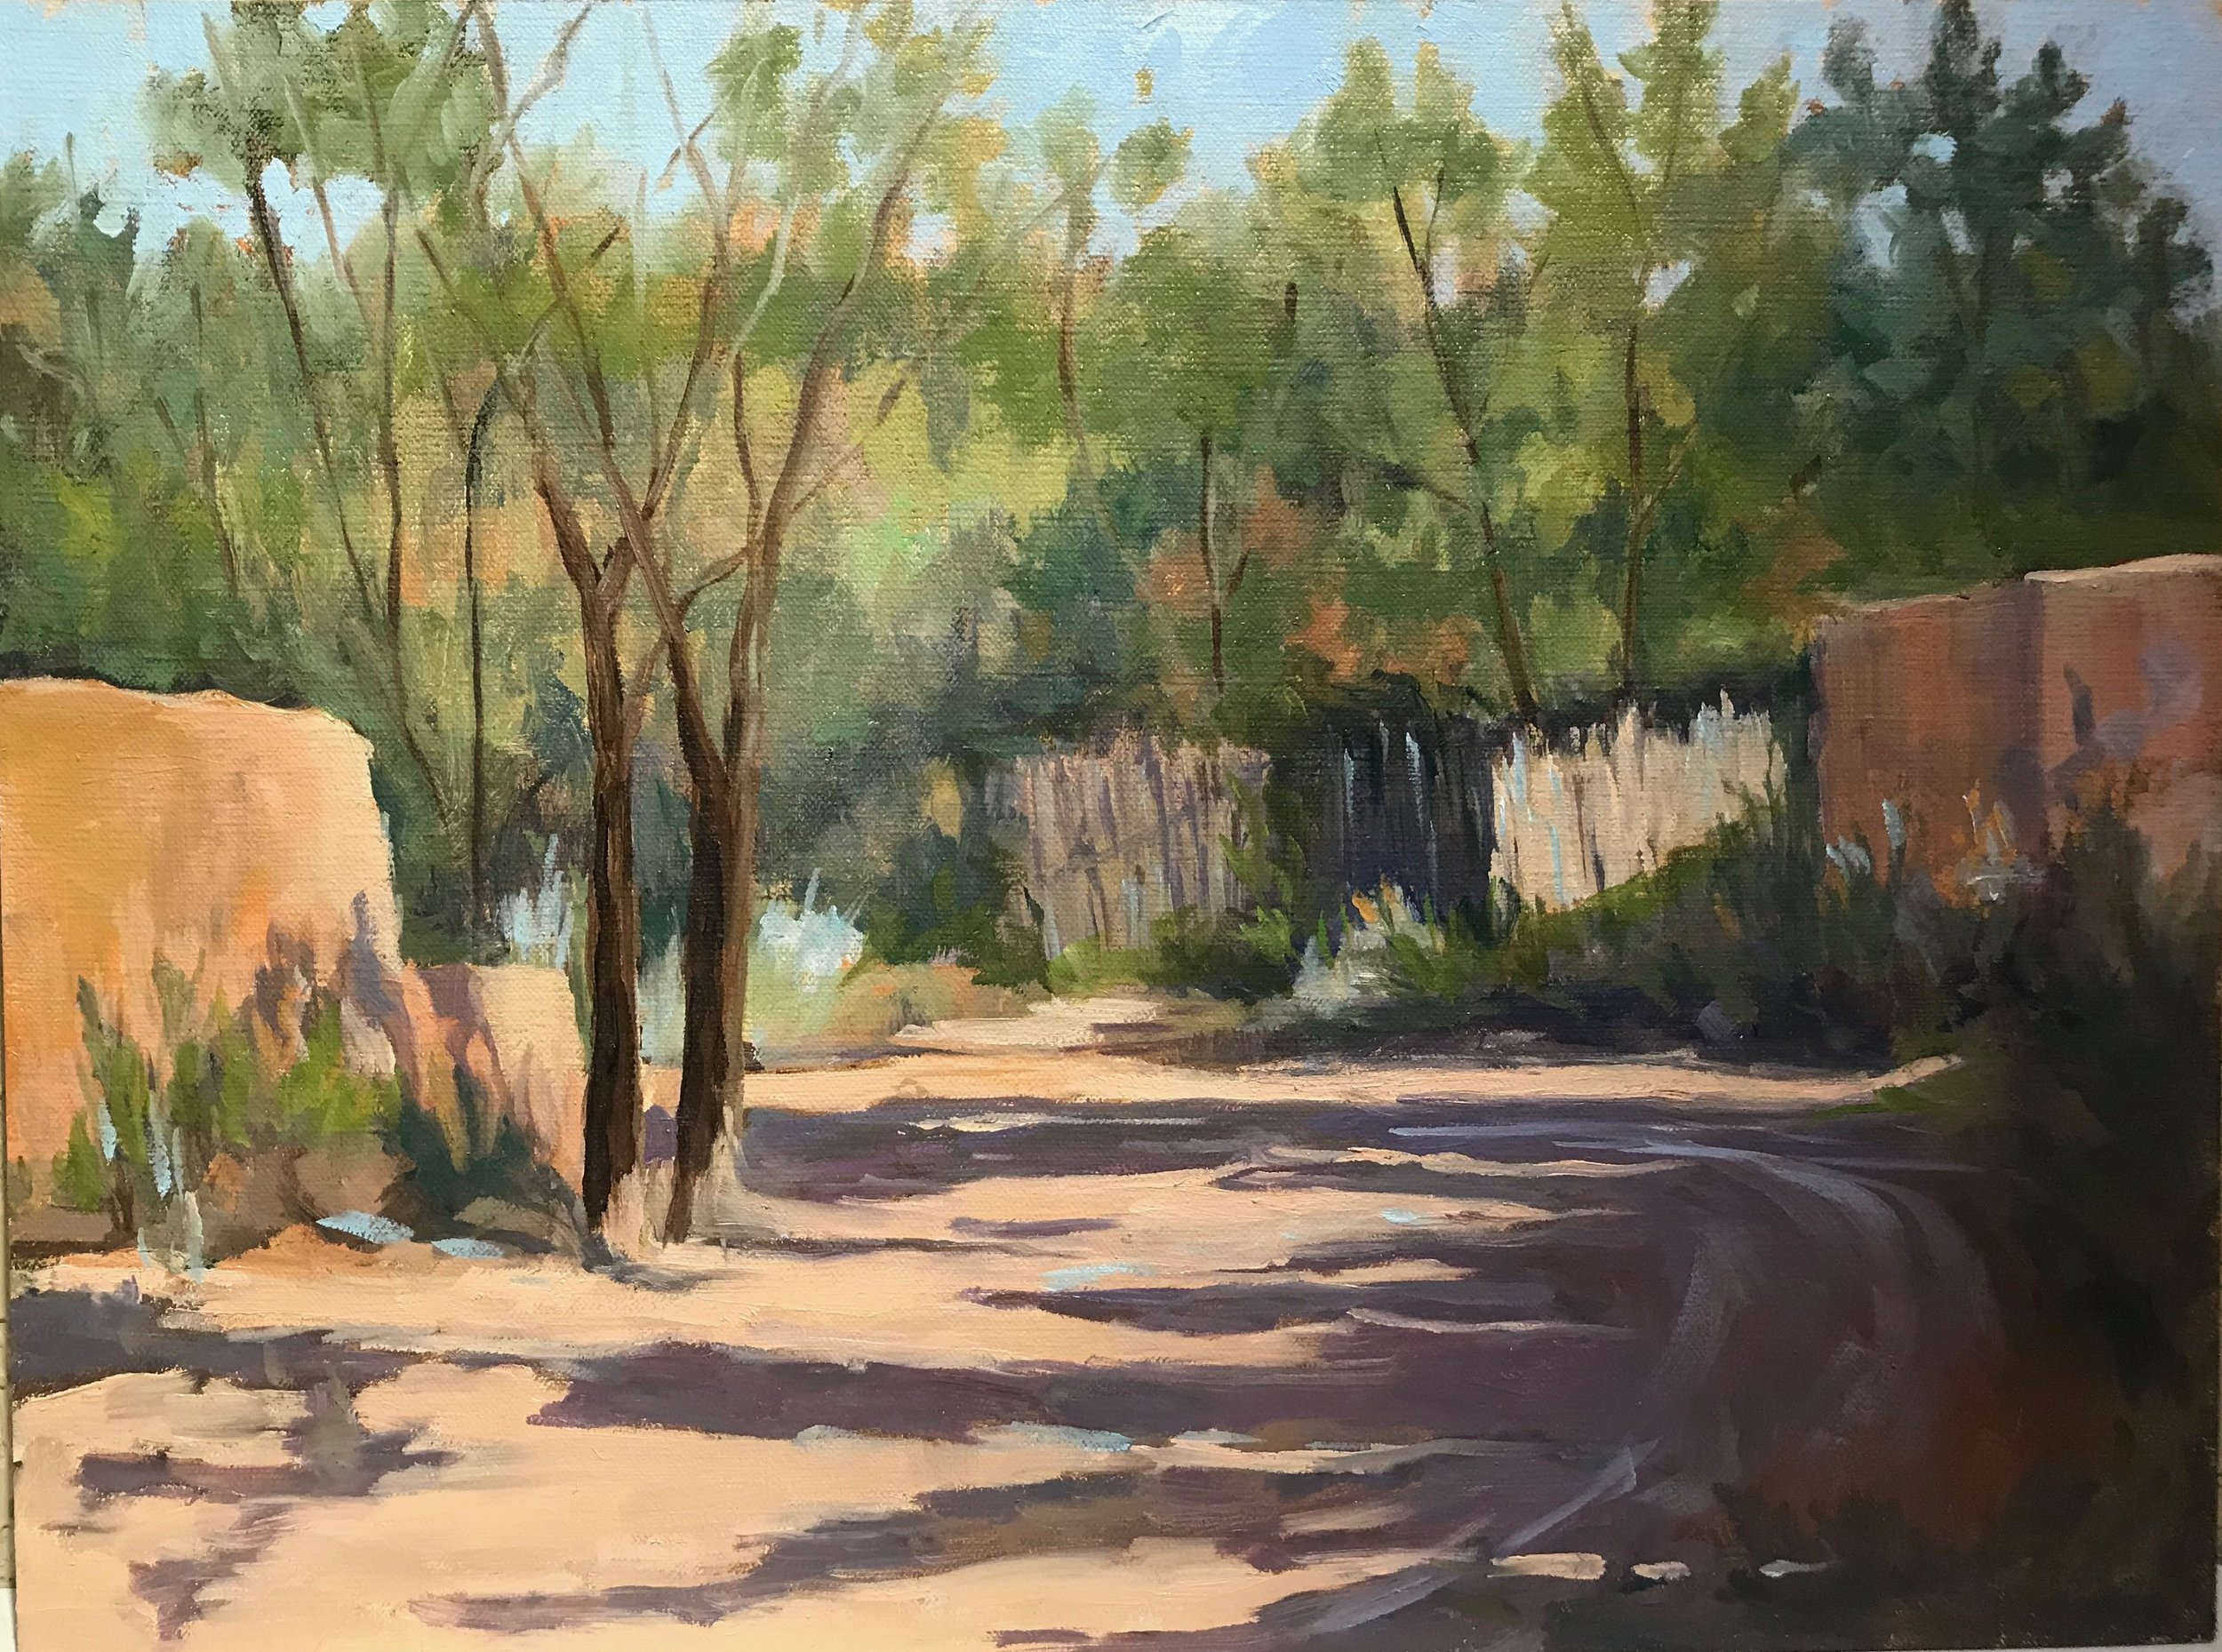 Adobe and Coyote Fences